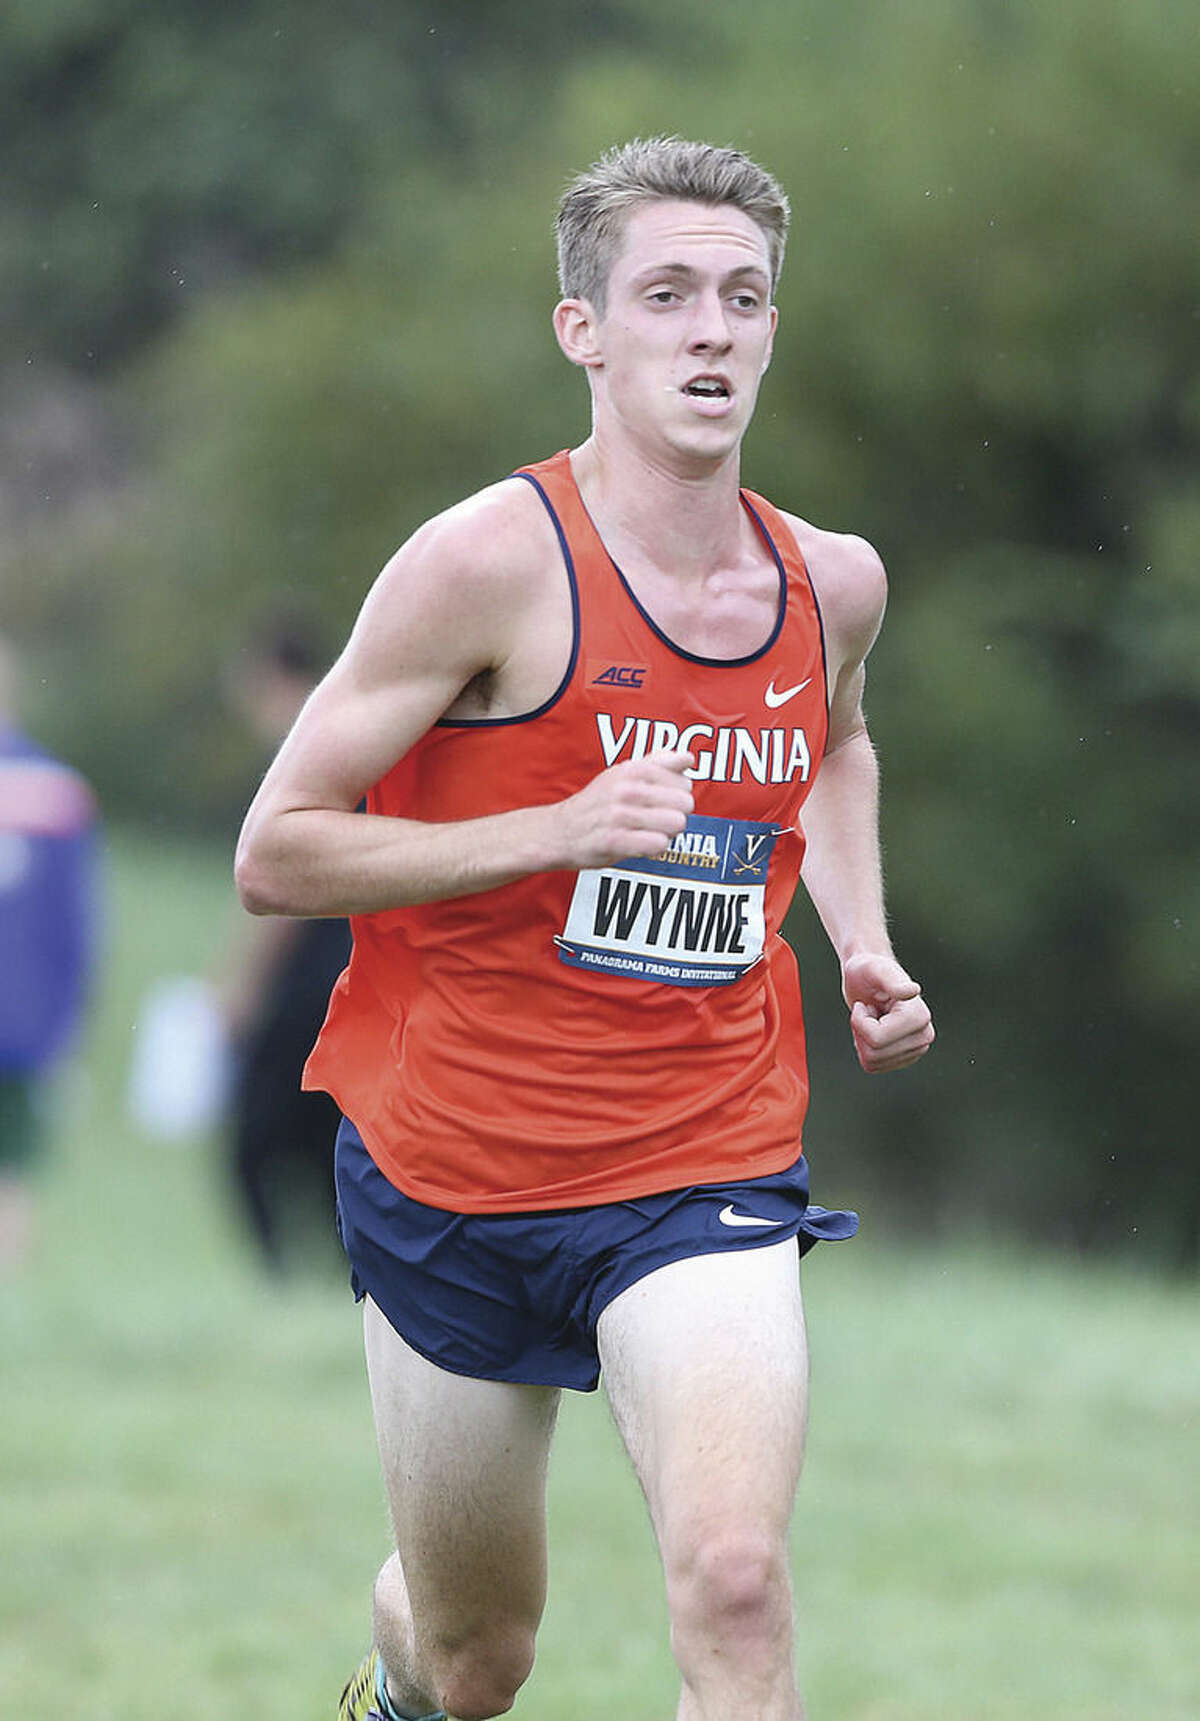 Photo courtesy of UVA Media Relations Westport resident Henry Wynne, a former star runner at Staples High School, is leading the Cavaliers into this Saturady's NCAA Division 1 championship meet.